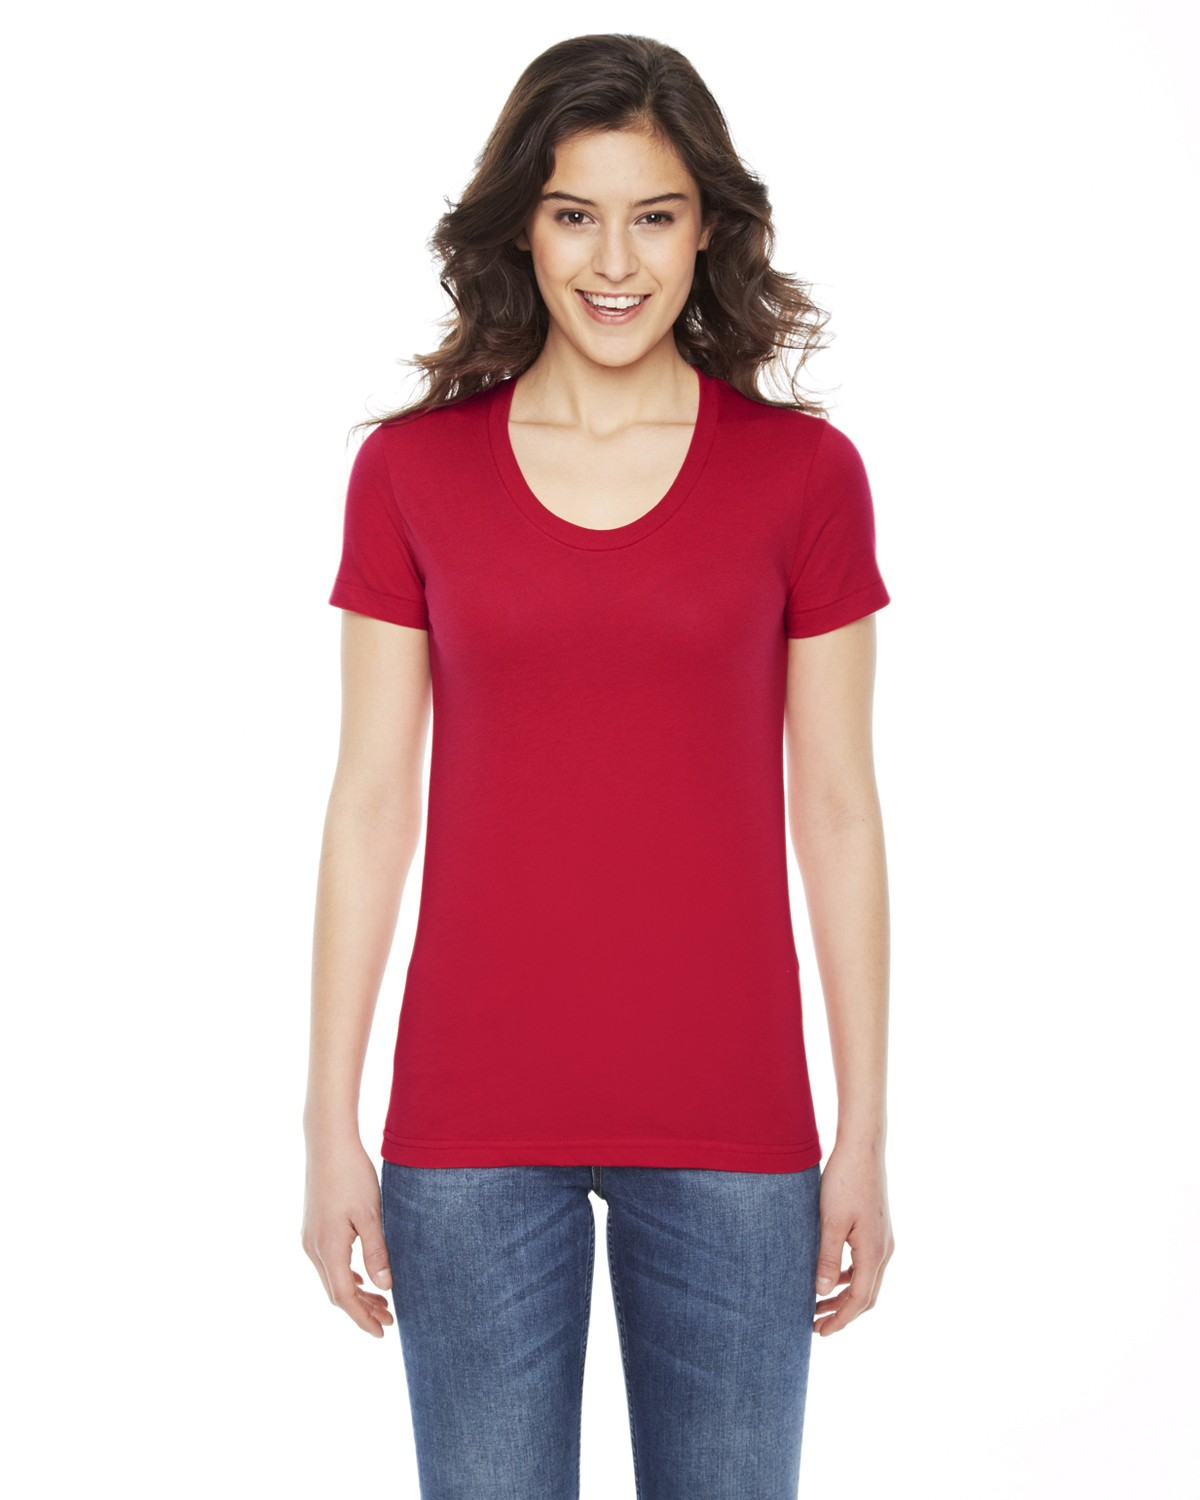 BB301W American Apparel RED